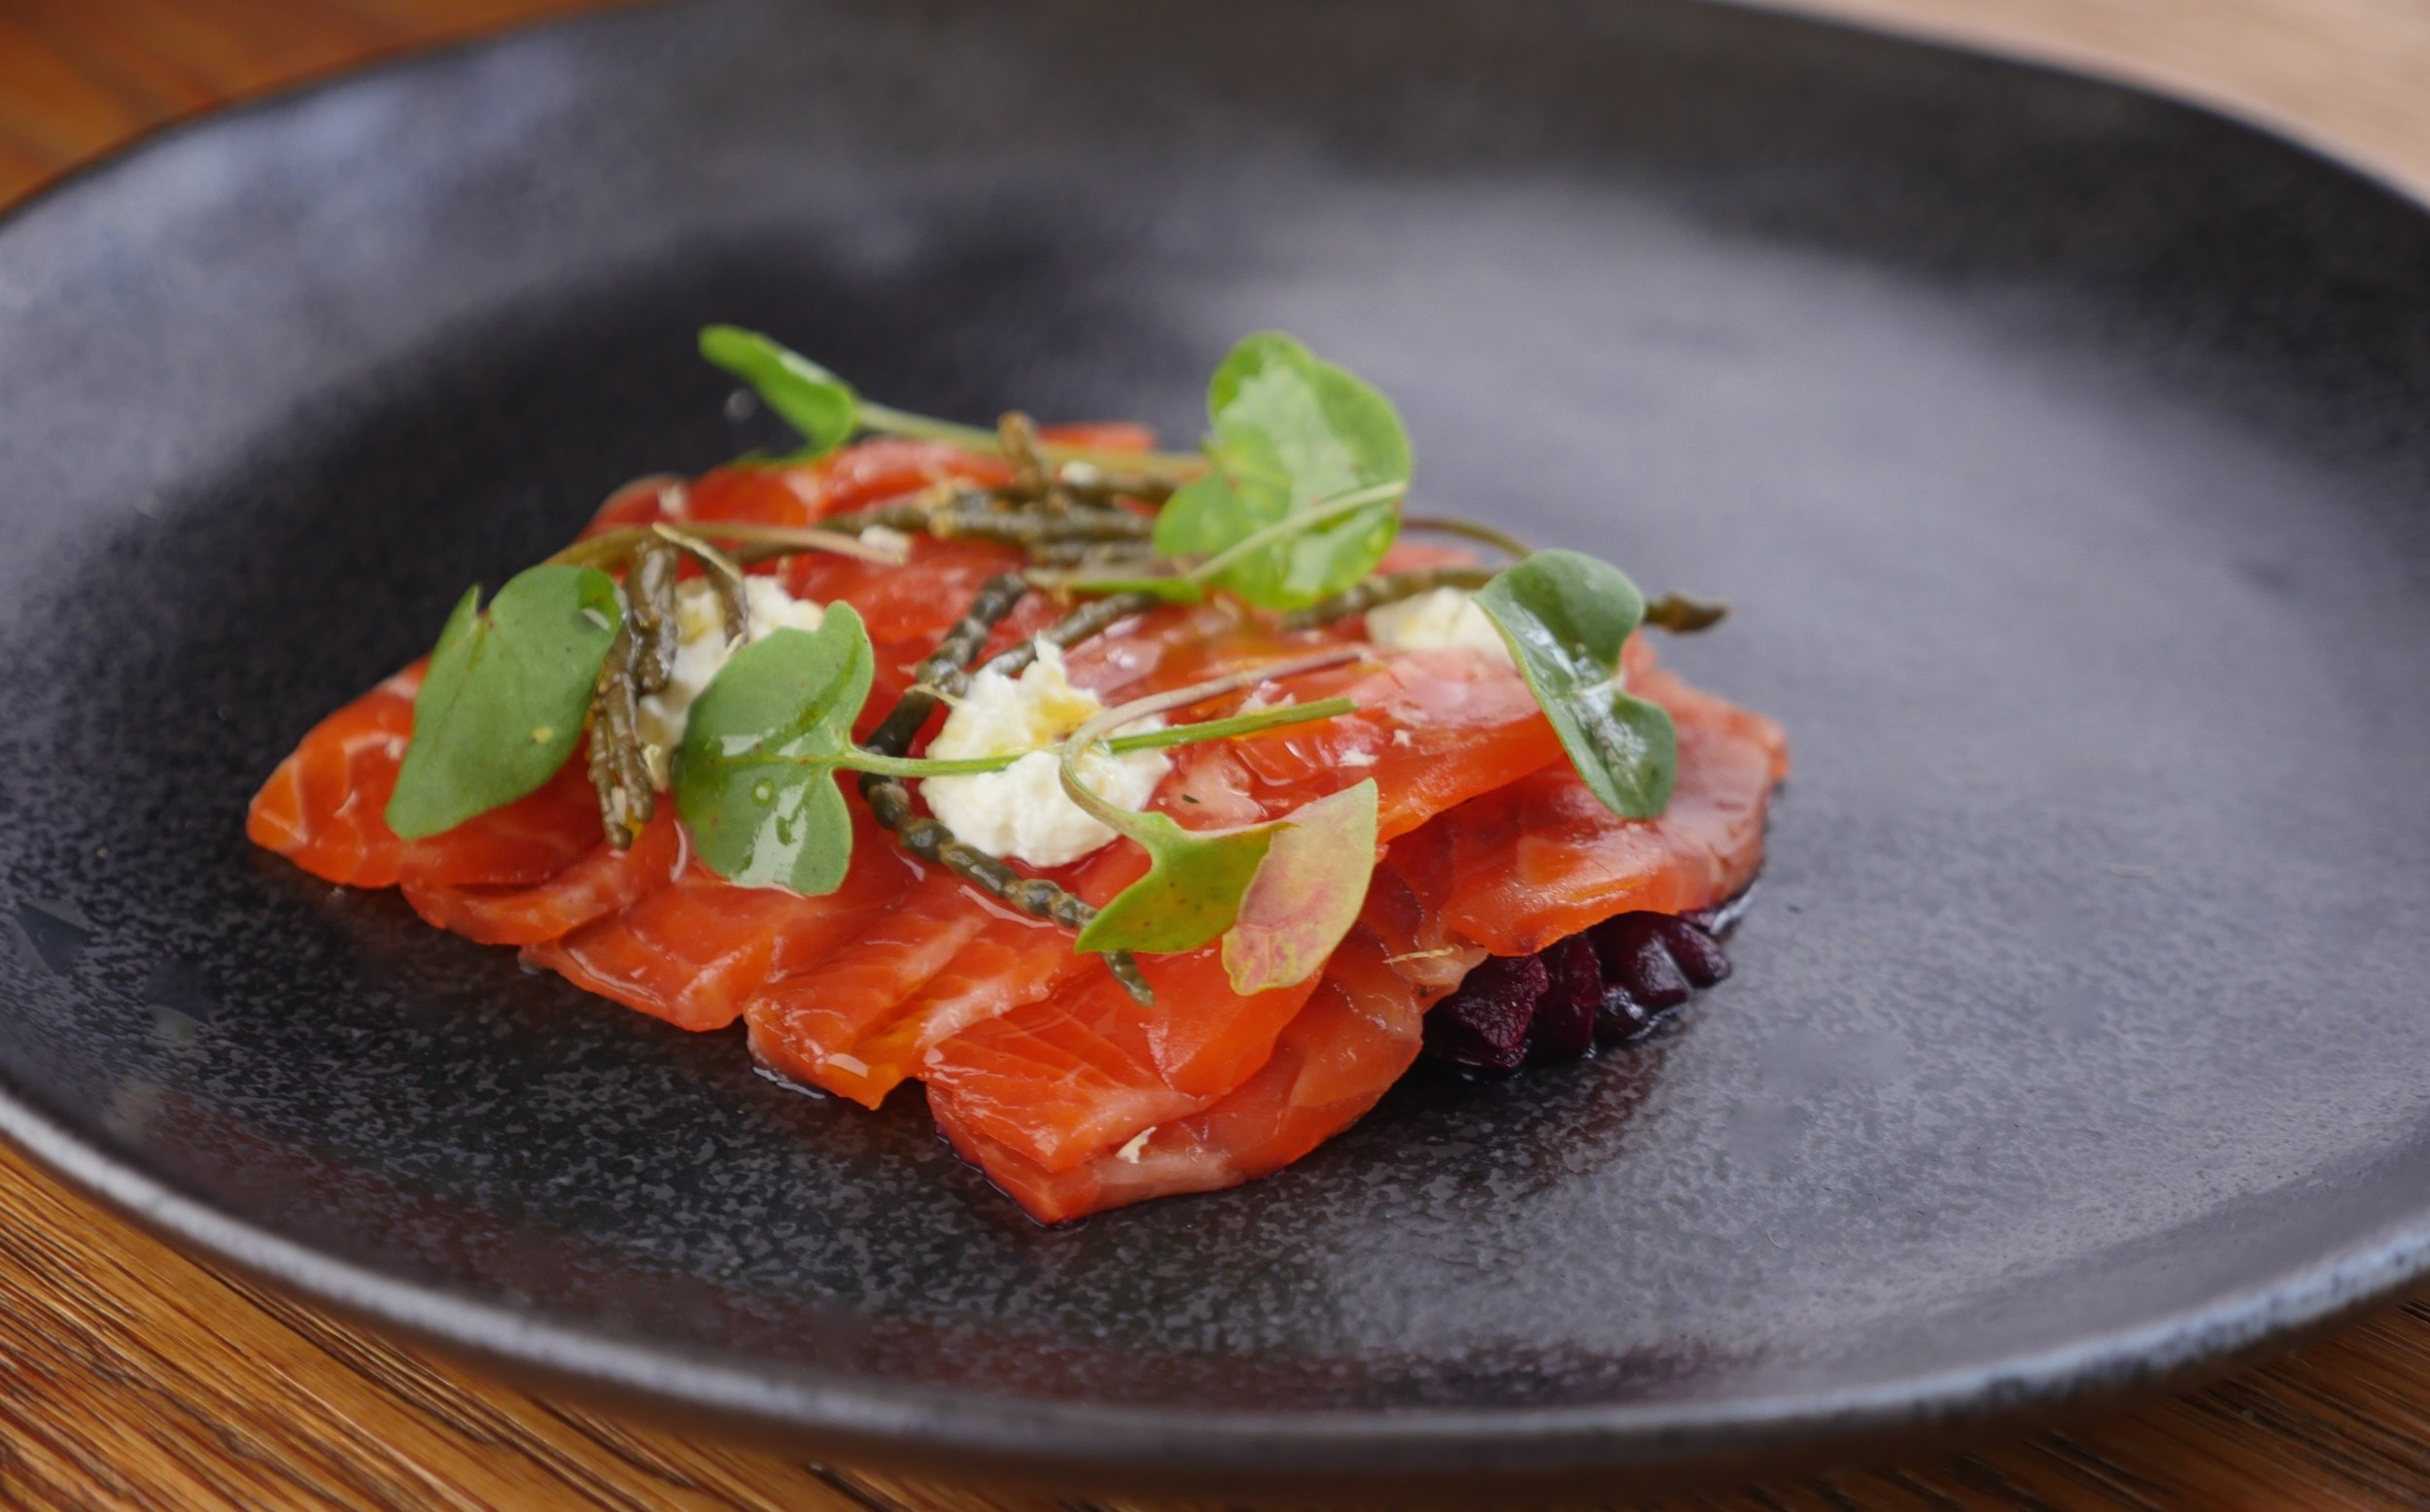 CURED OCEAN TROUT, FERMENTED BEETS, CHIVE CREAM, SAMPHIRE, WOODLAND SORREL